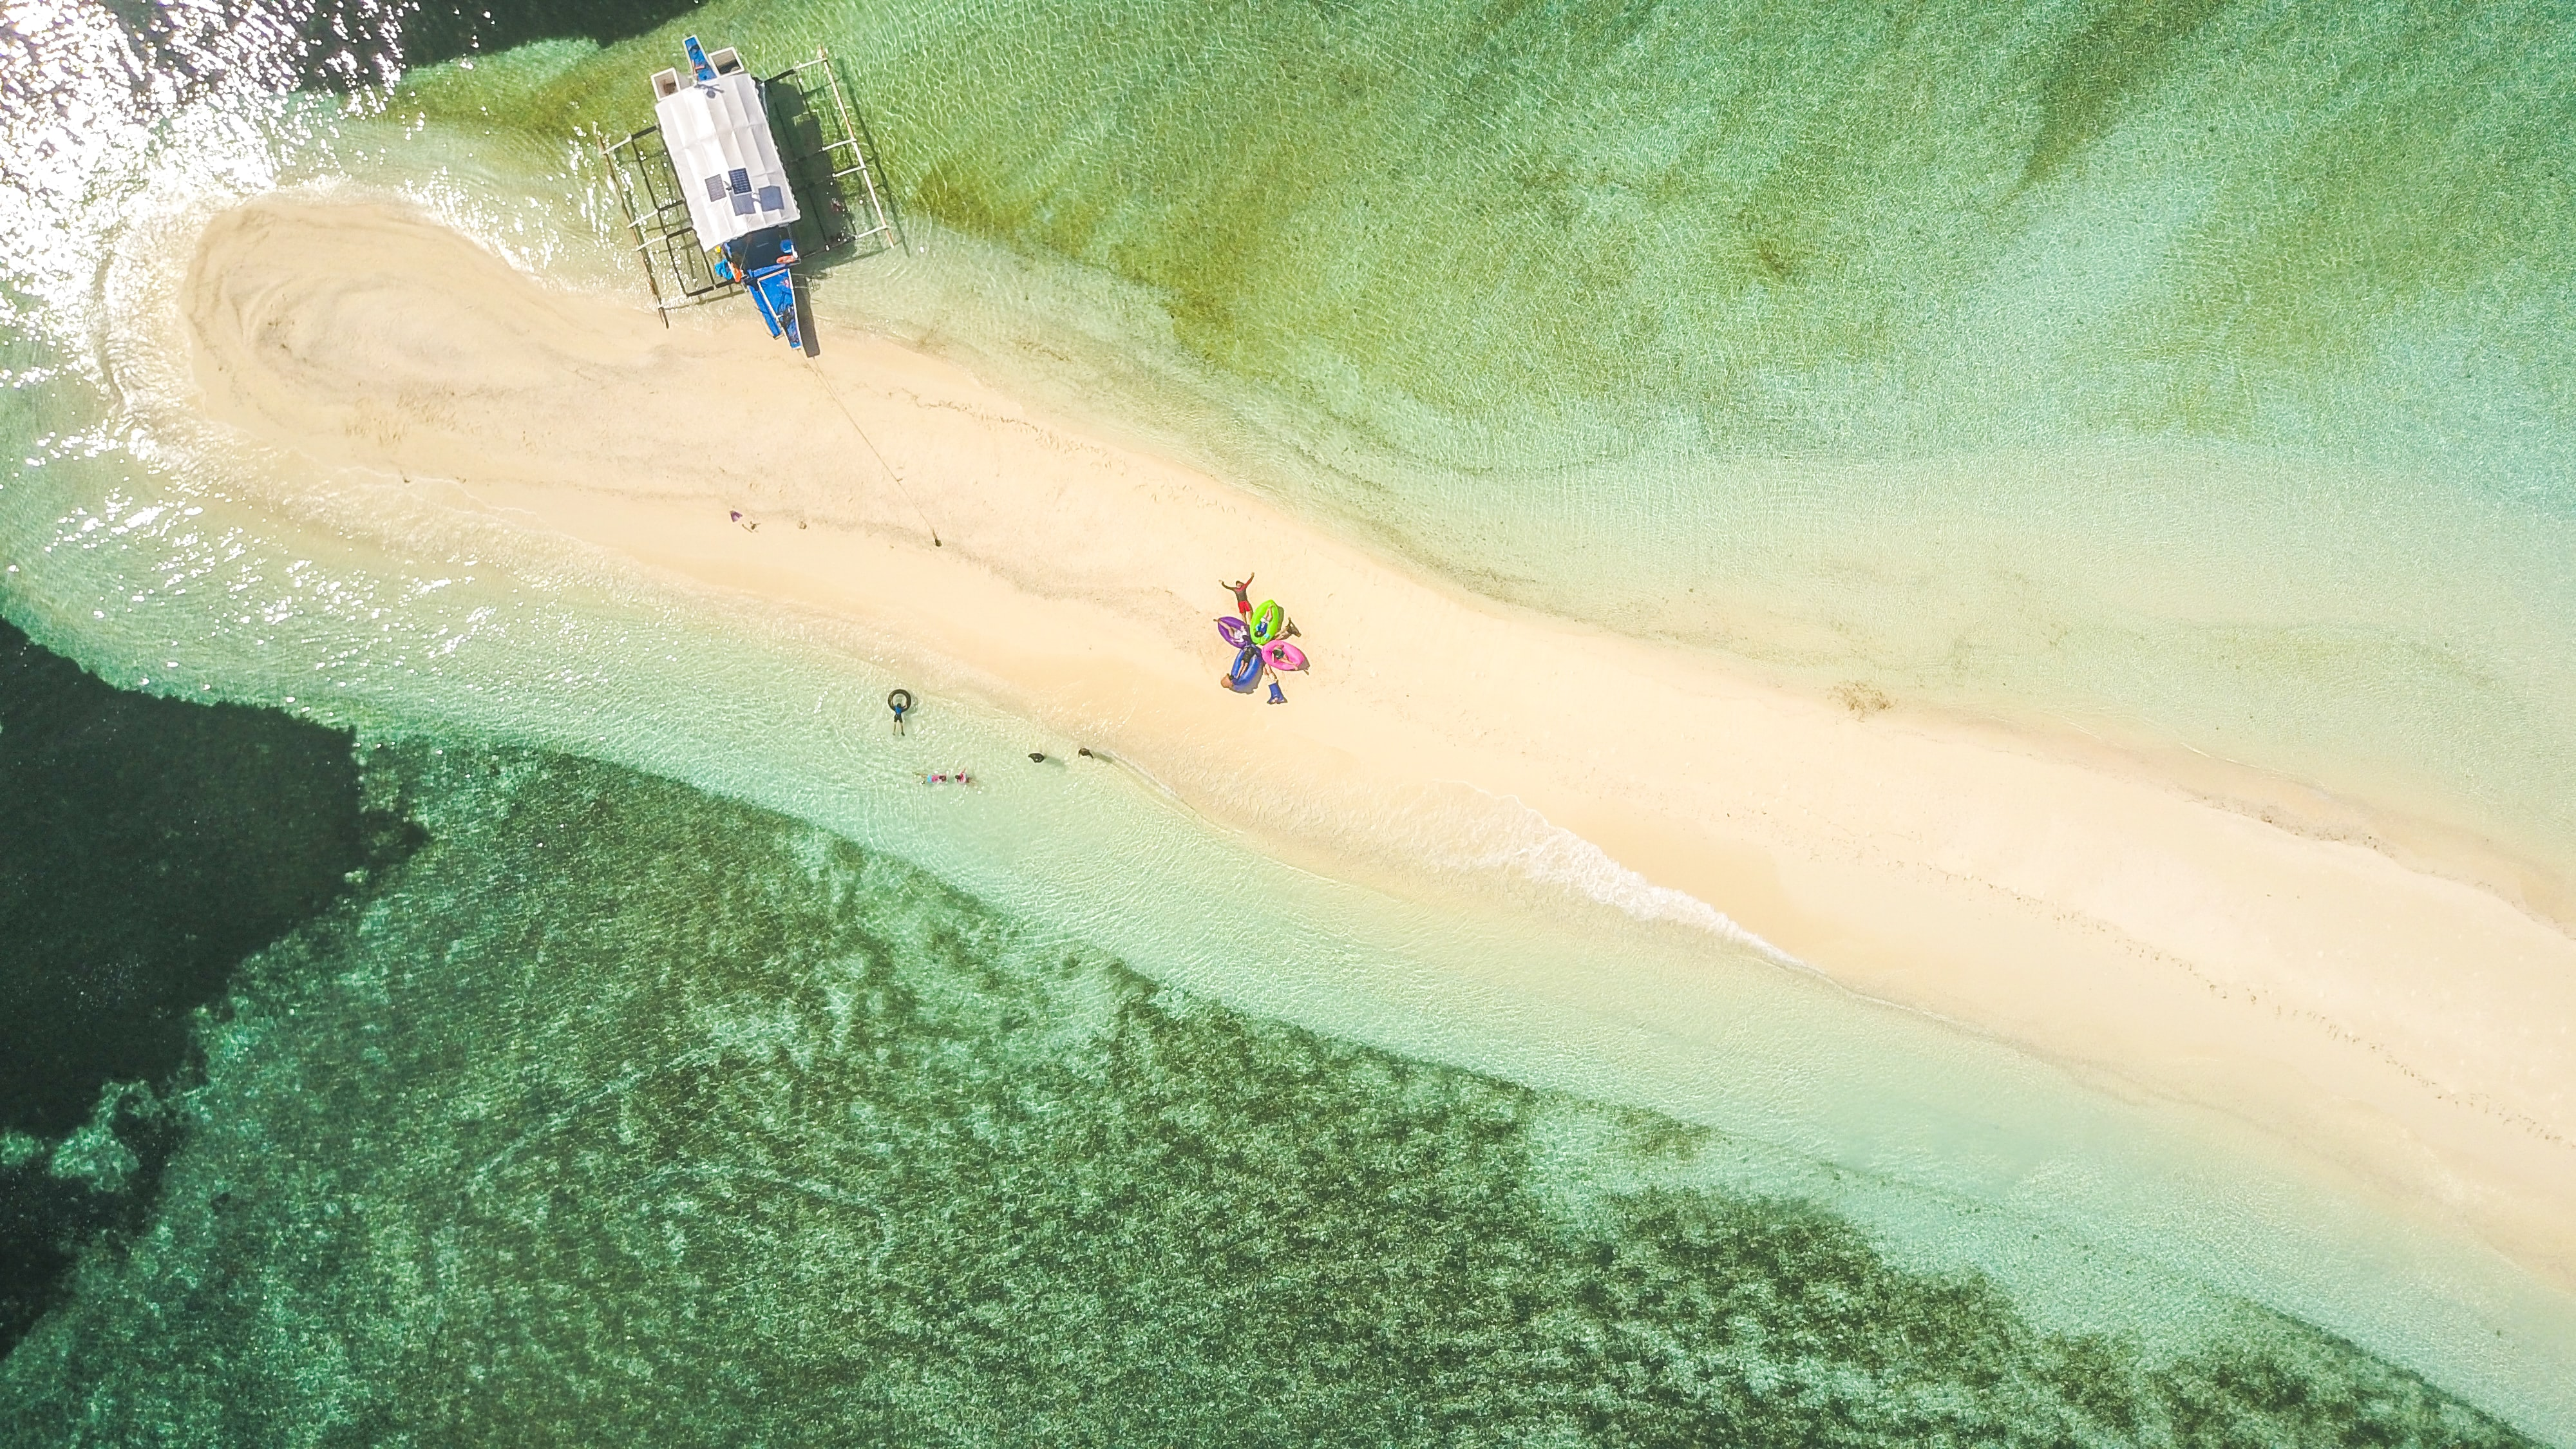 aerial photography of white and blue boat on seashore during daytime